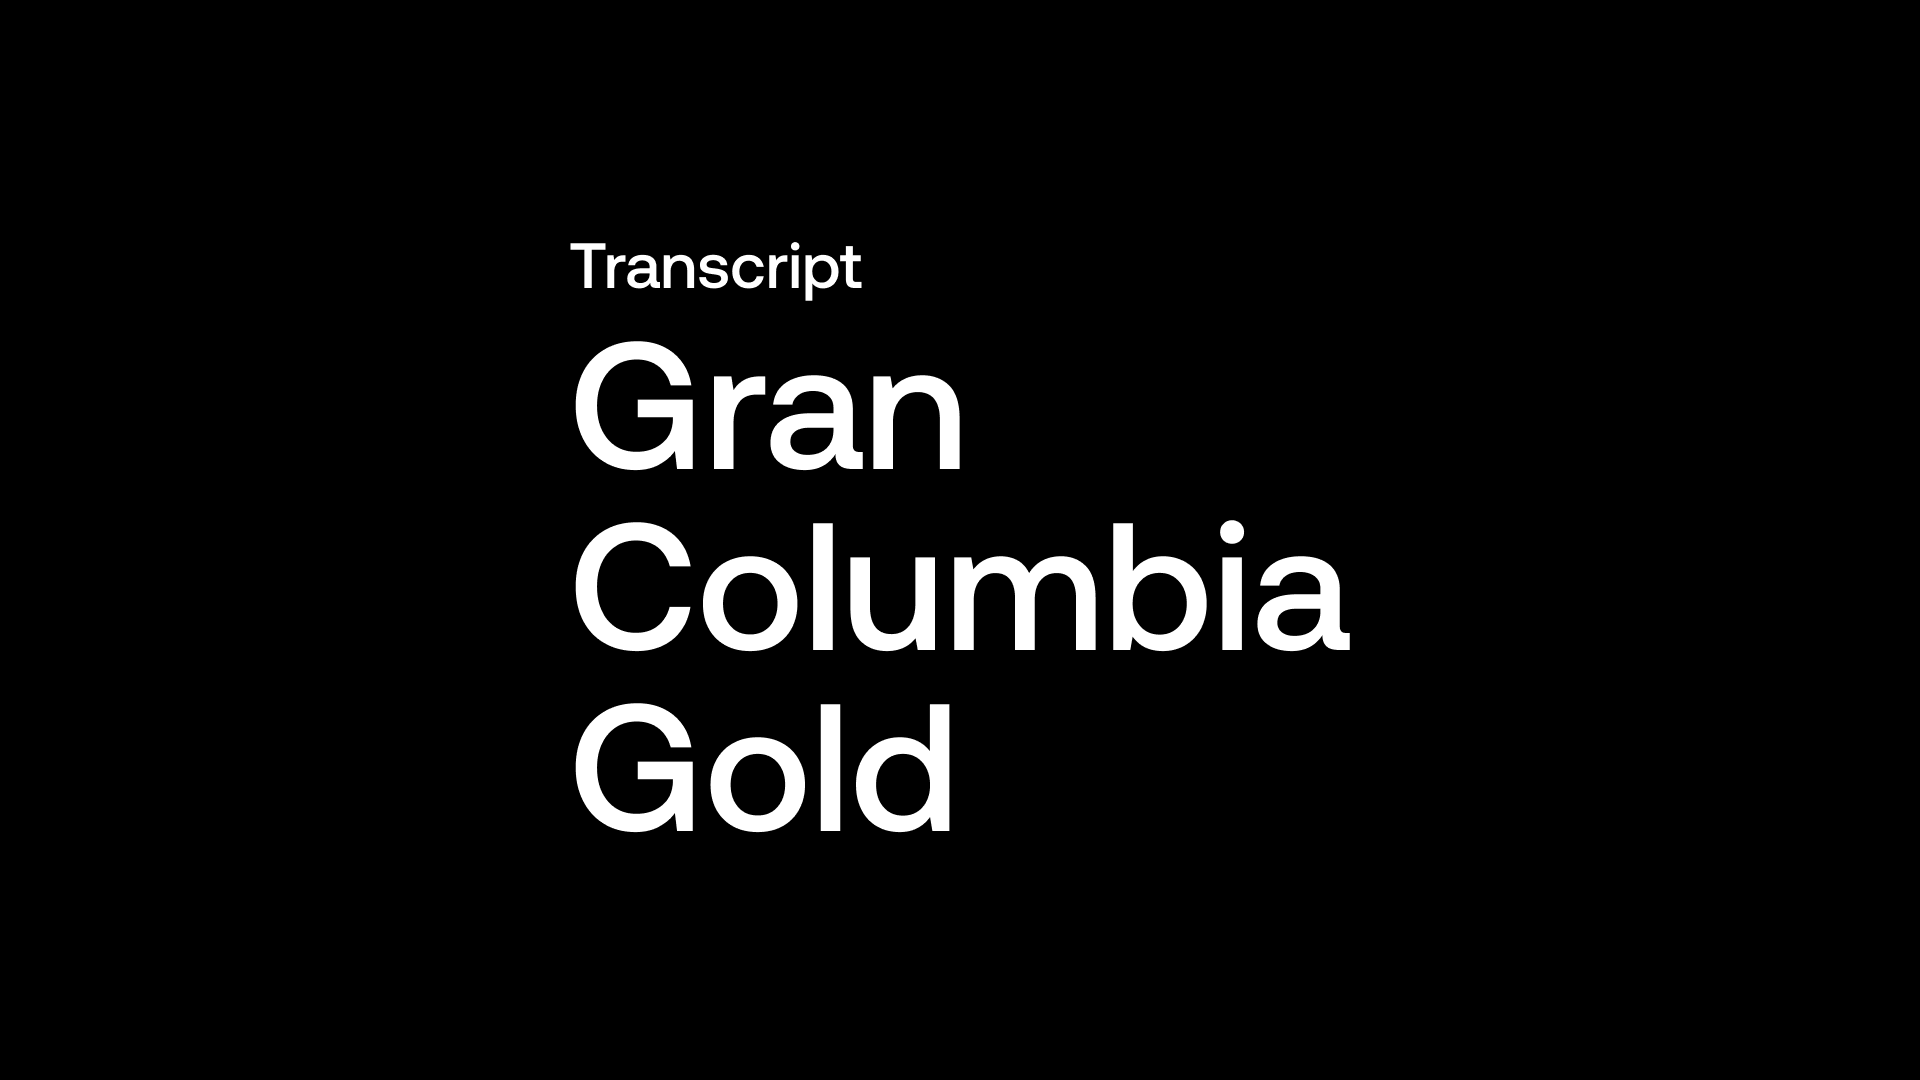 Transcript: Gran Colombia Gold (GCM) - Dividend Paying Mid Tier in the Making